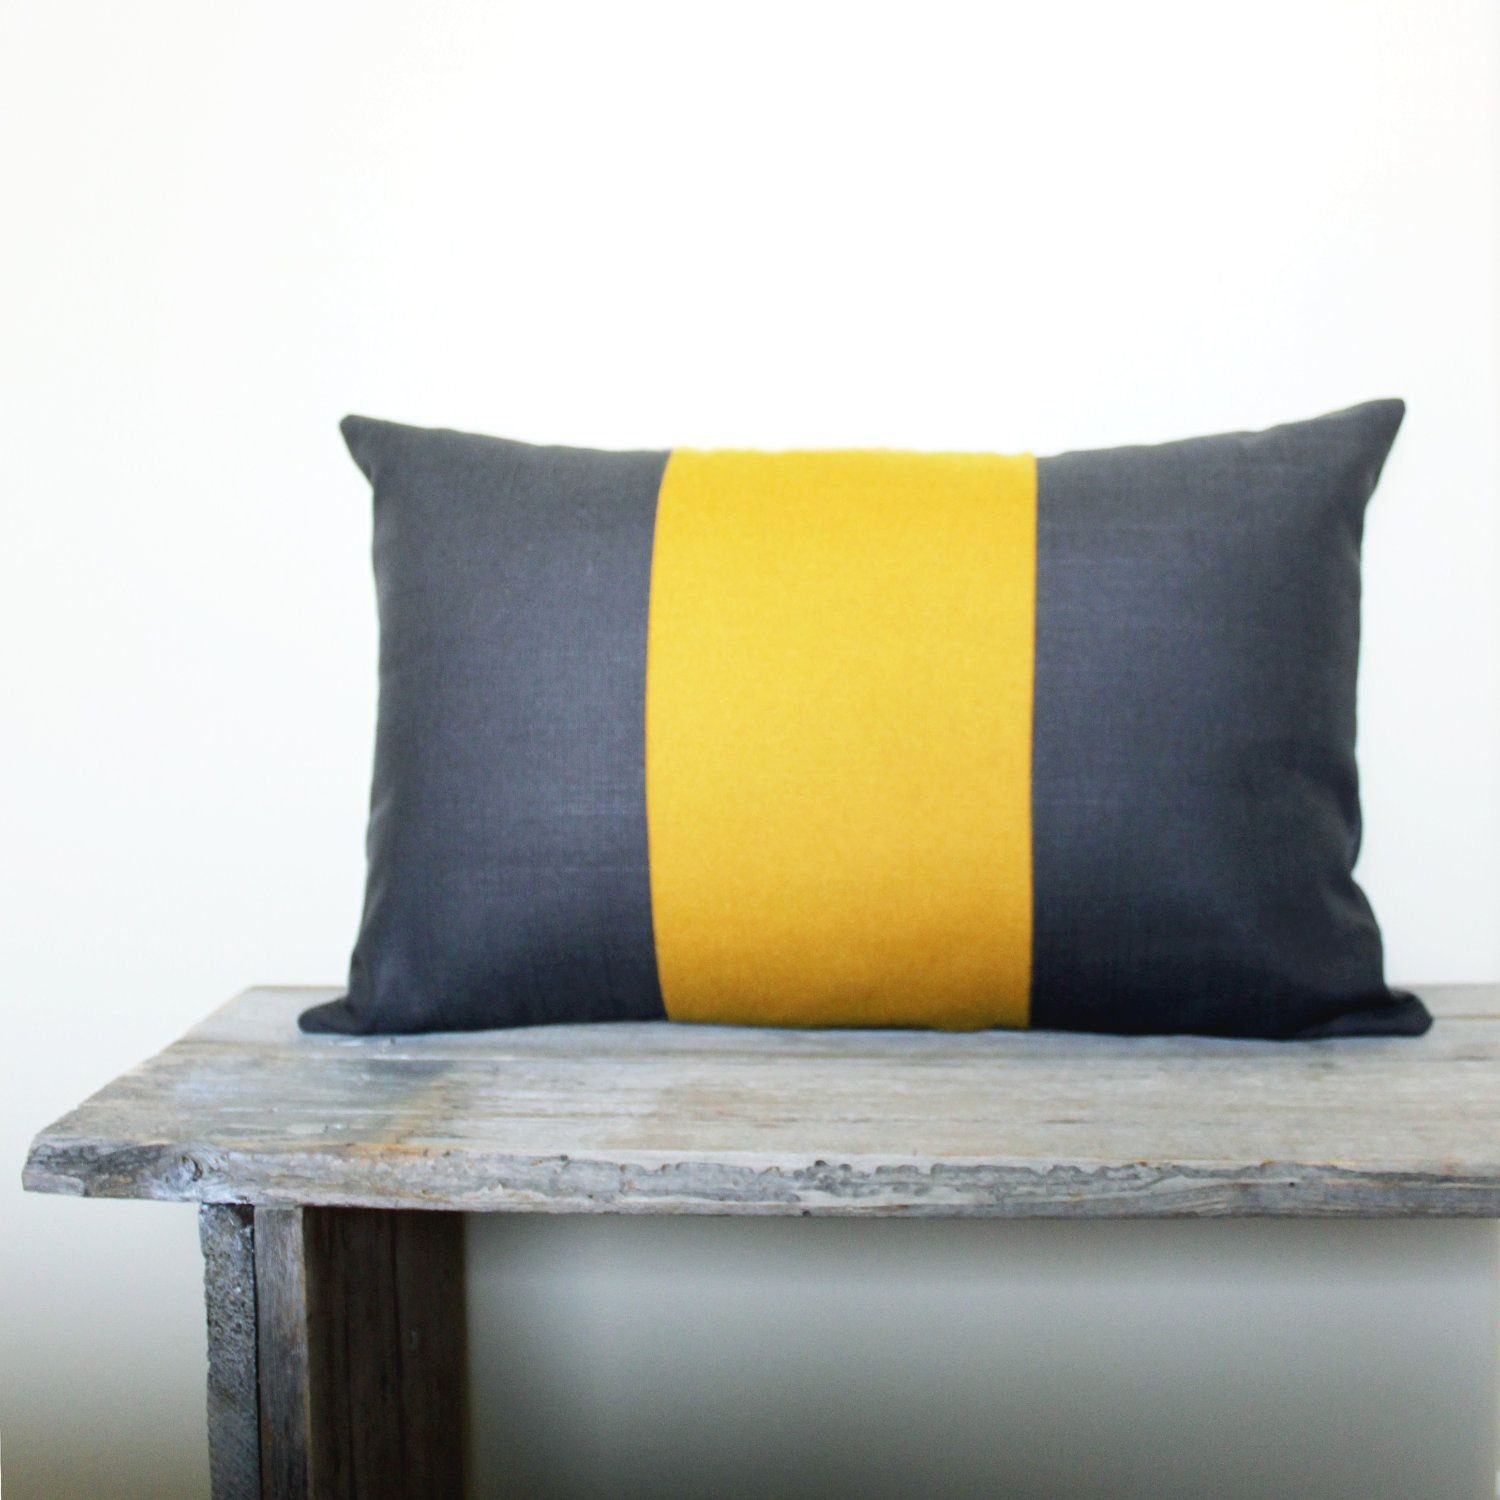 inch for accent pillows outdoor design pictures yellow sunflower pillow sofa xx sunbrella throw bsqsf stirring dfohome set gray black